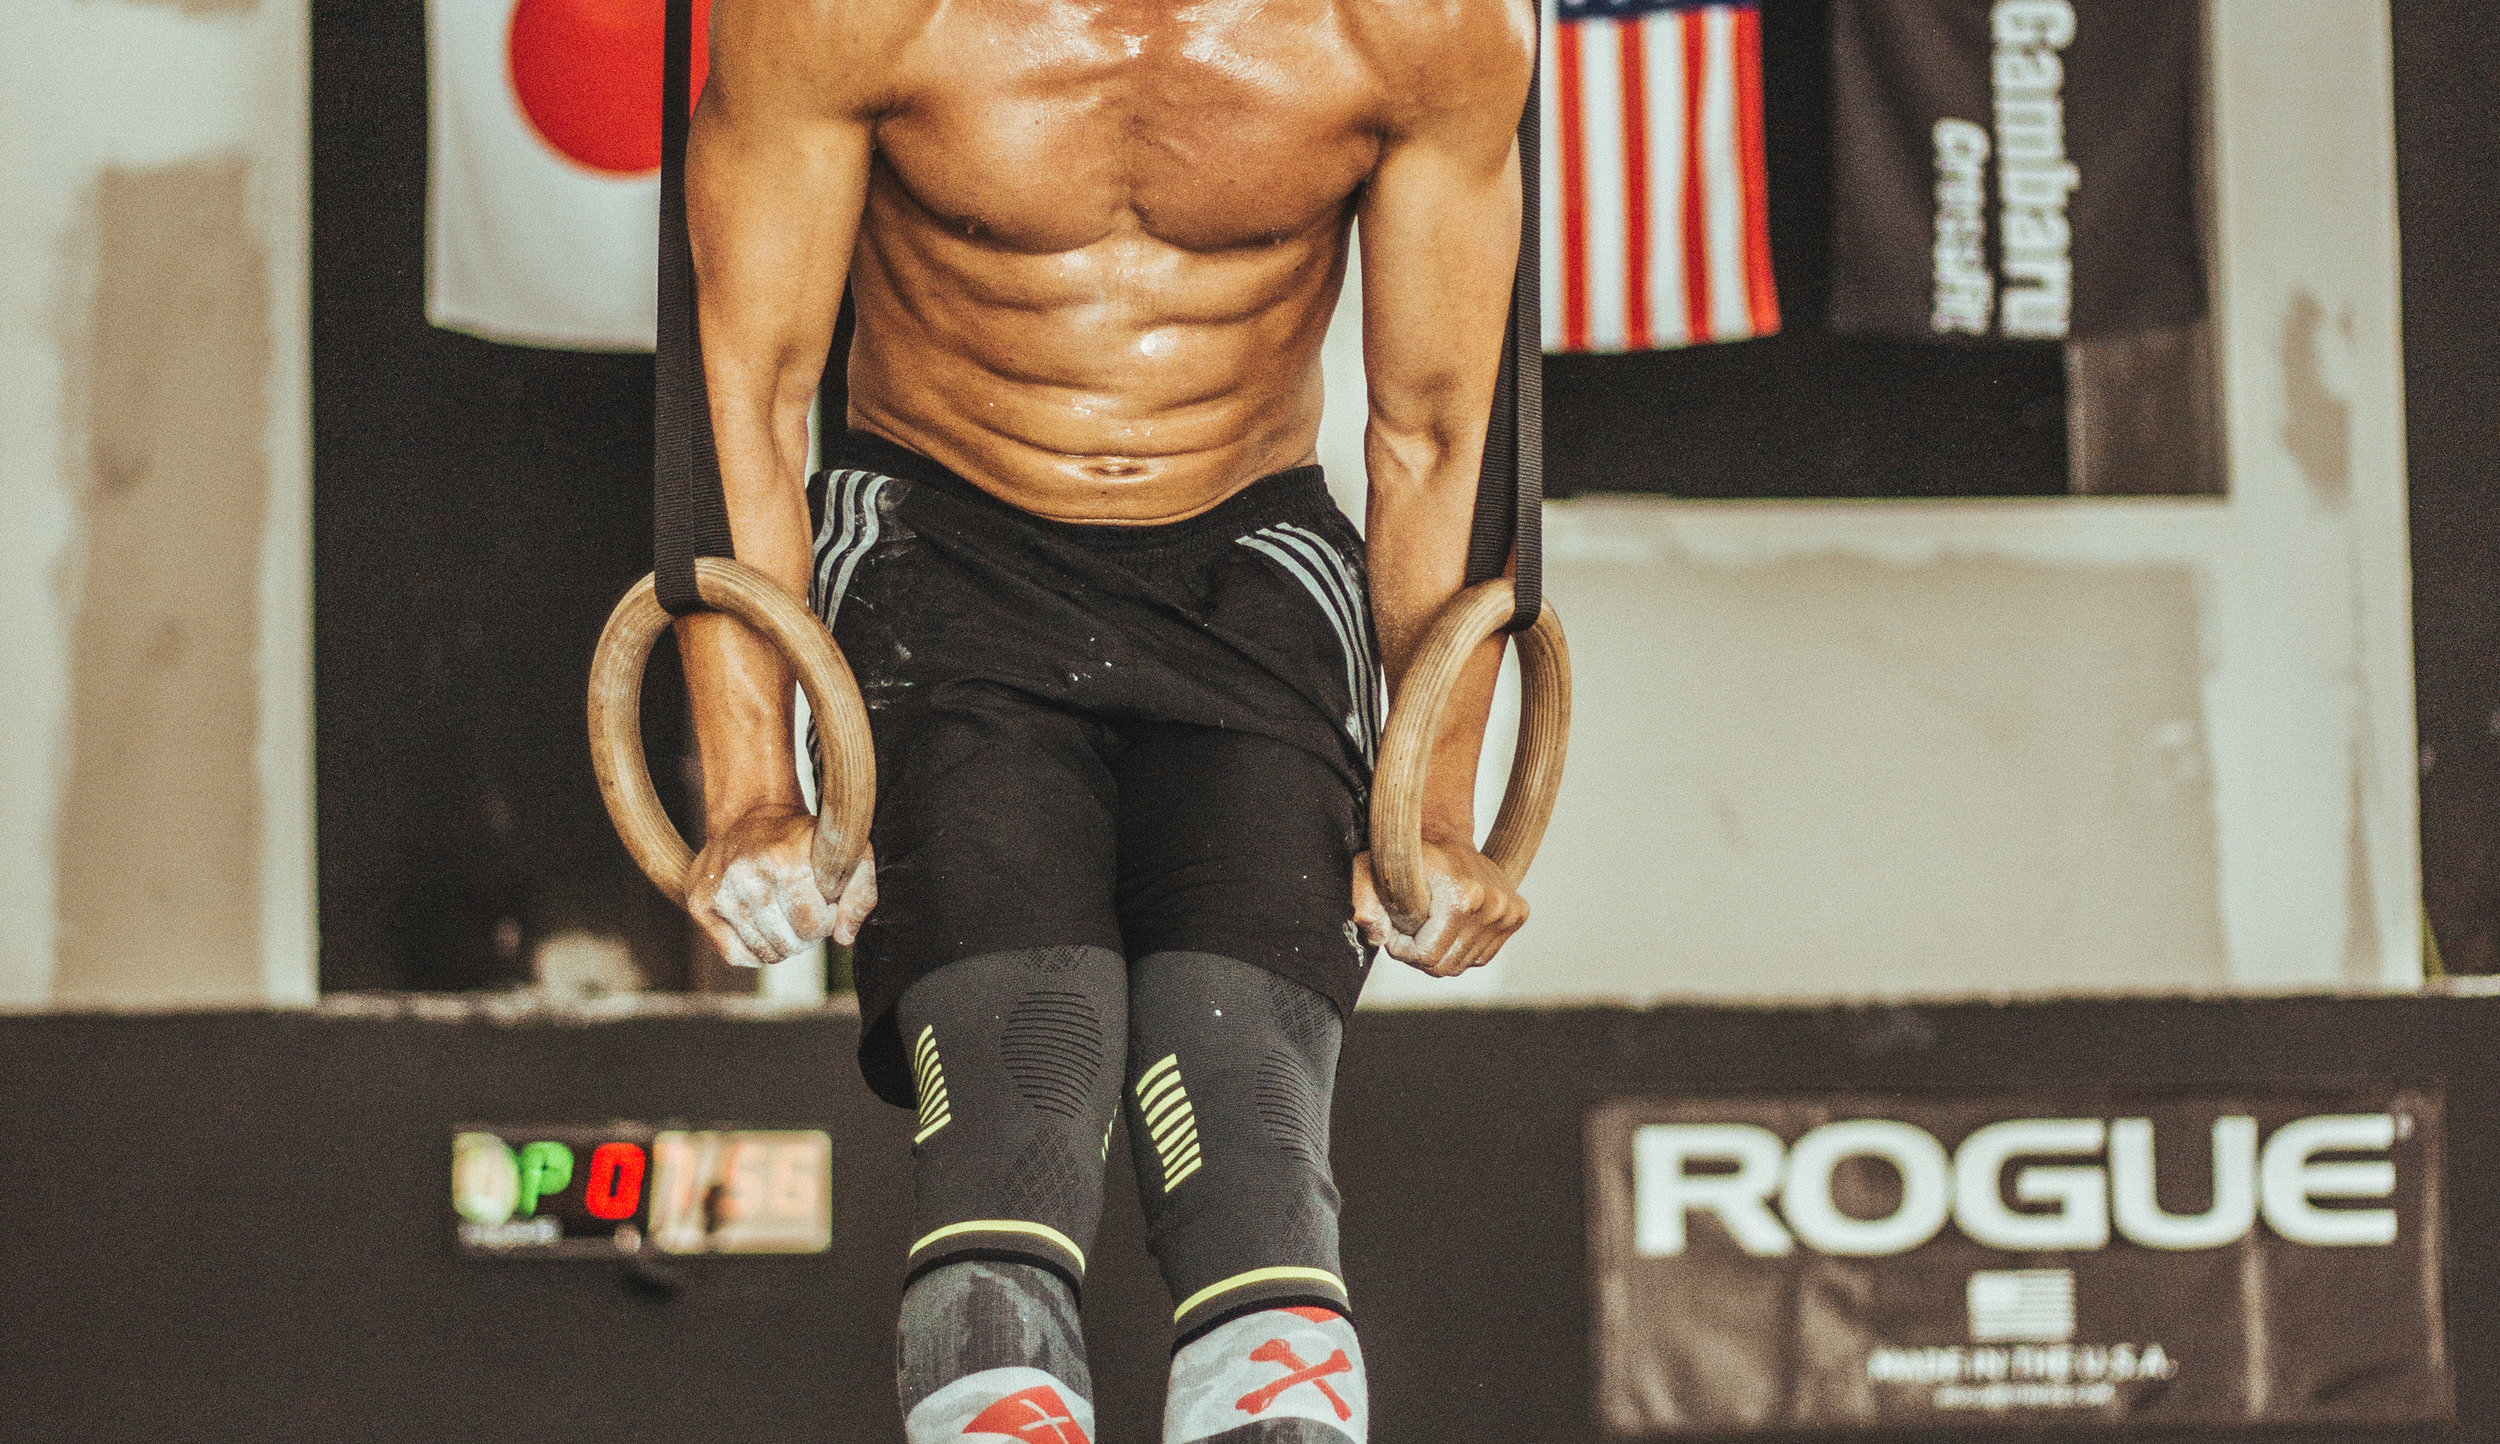 crossfit voyedge rx fitness tours